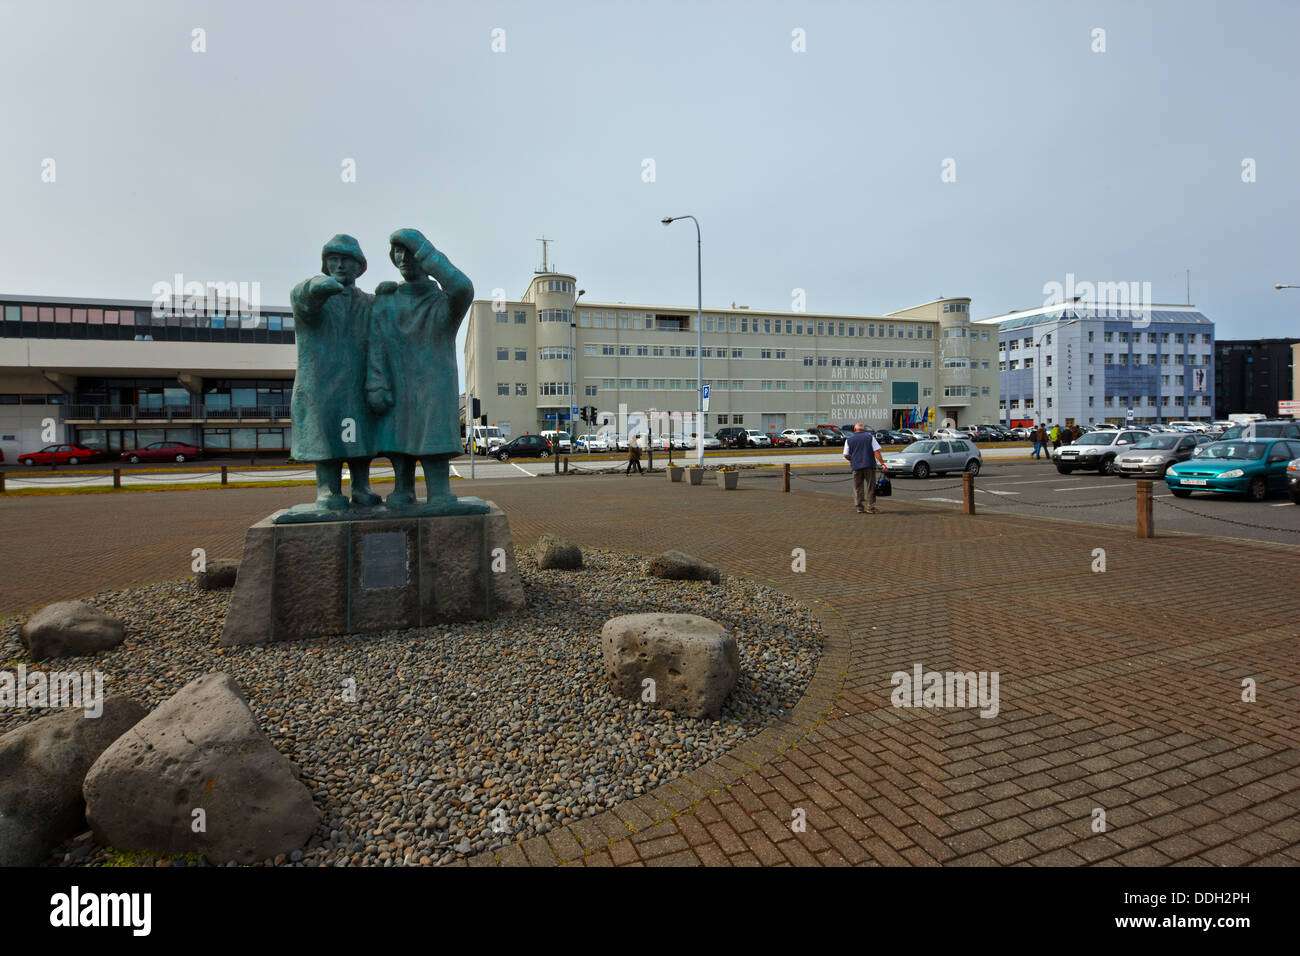 Fisherman sailors statue, Reykjavik, Iceland - Stock Image